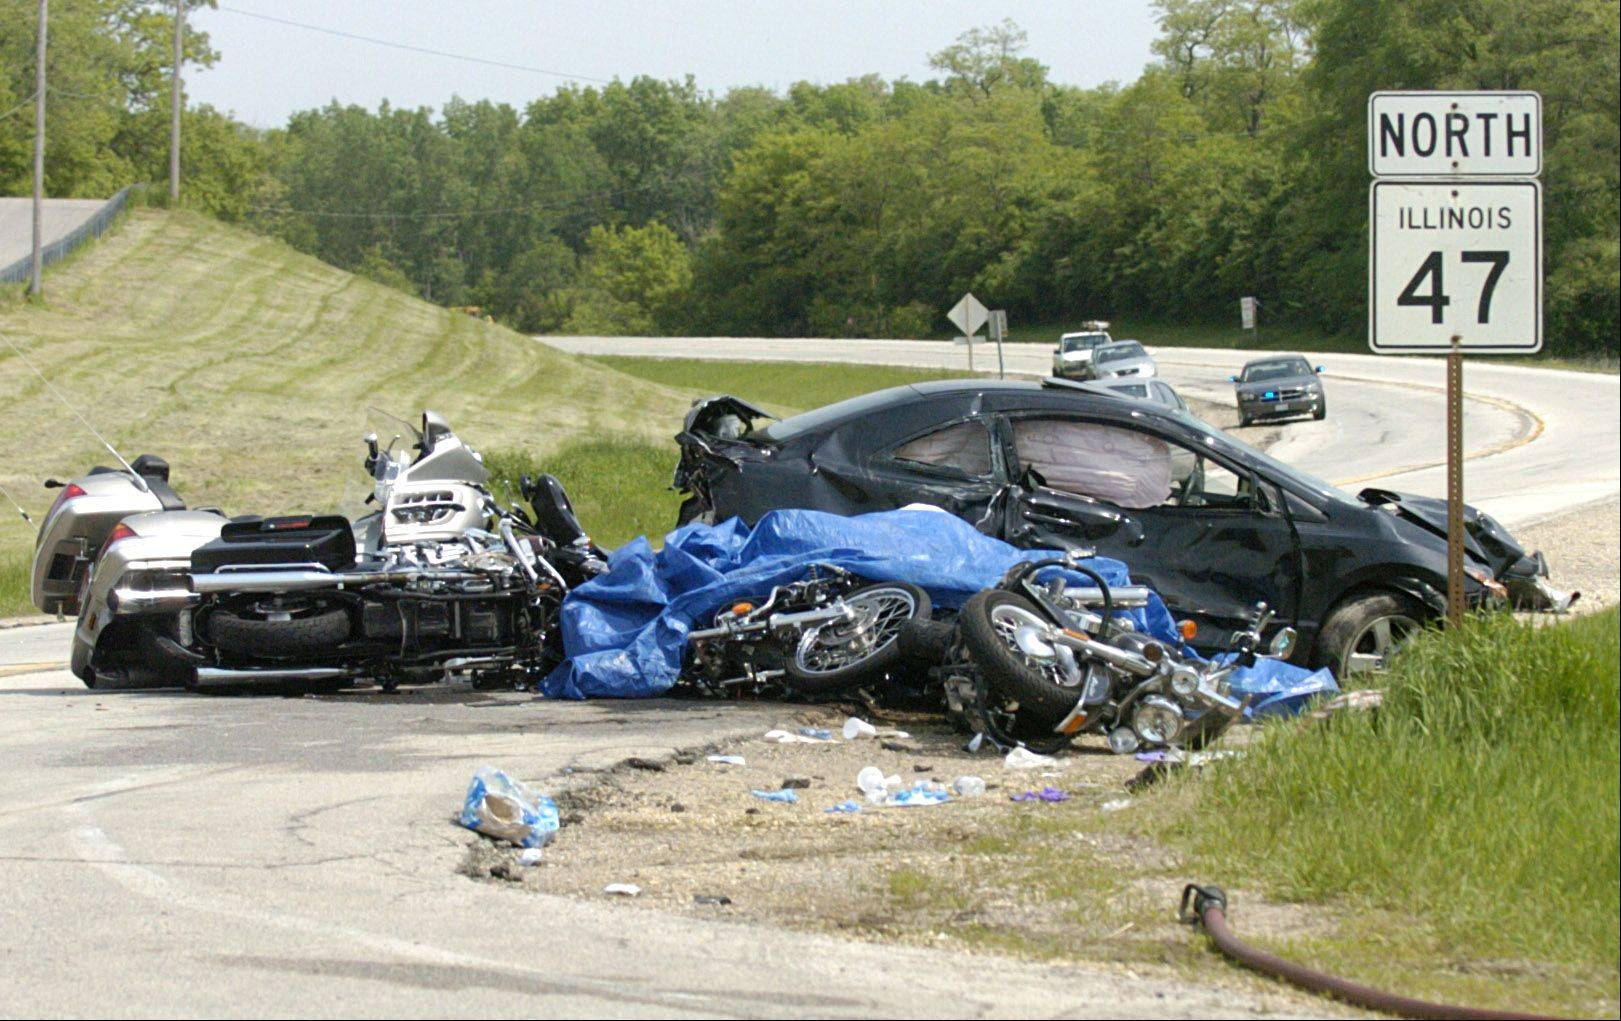 This is the scene of a crash that killed two and involved six motorcycles and three cars on Route 47 just north of Smith Road between Elburn and Sugar Grove on May 23, 2009.